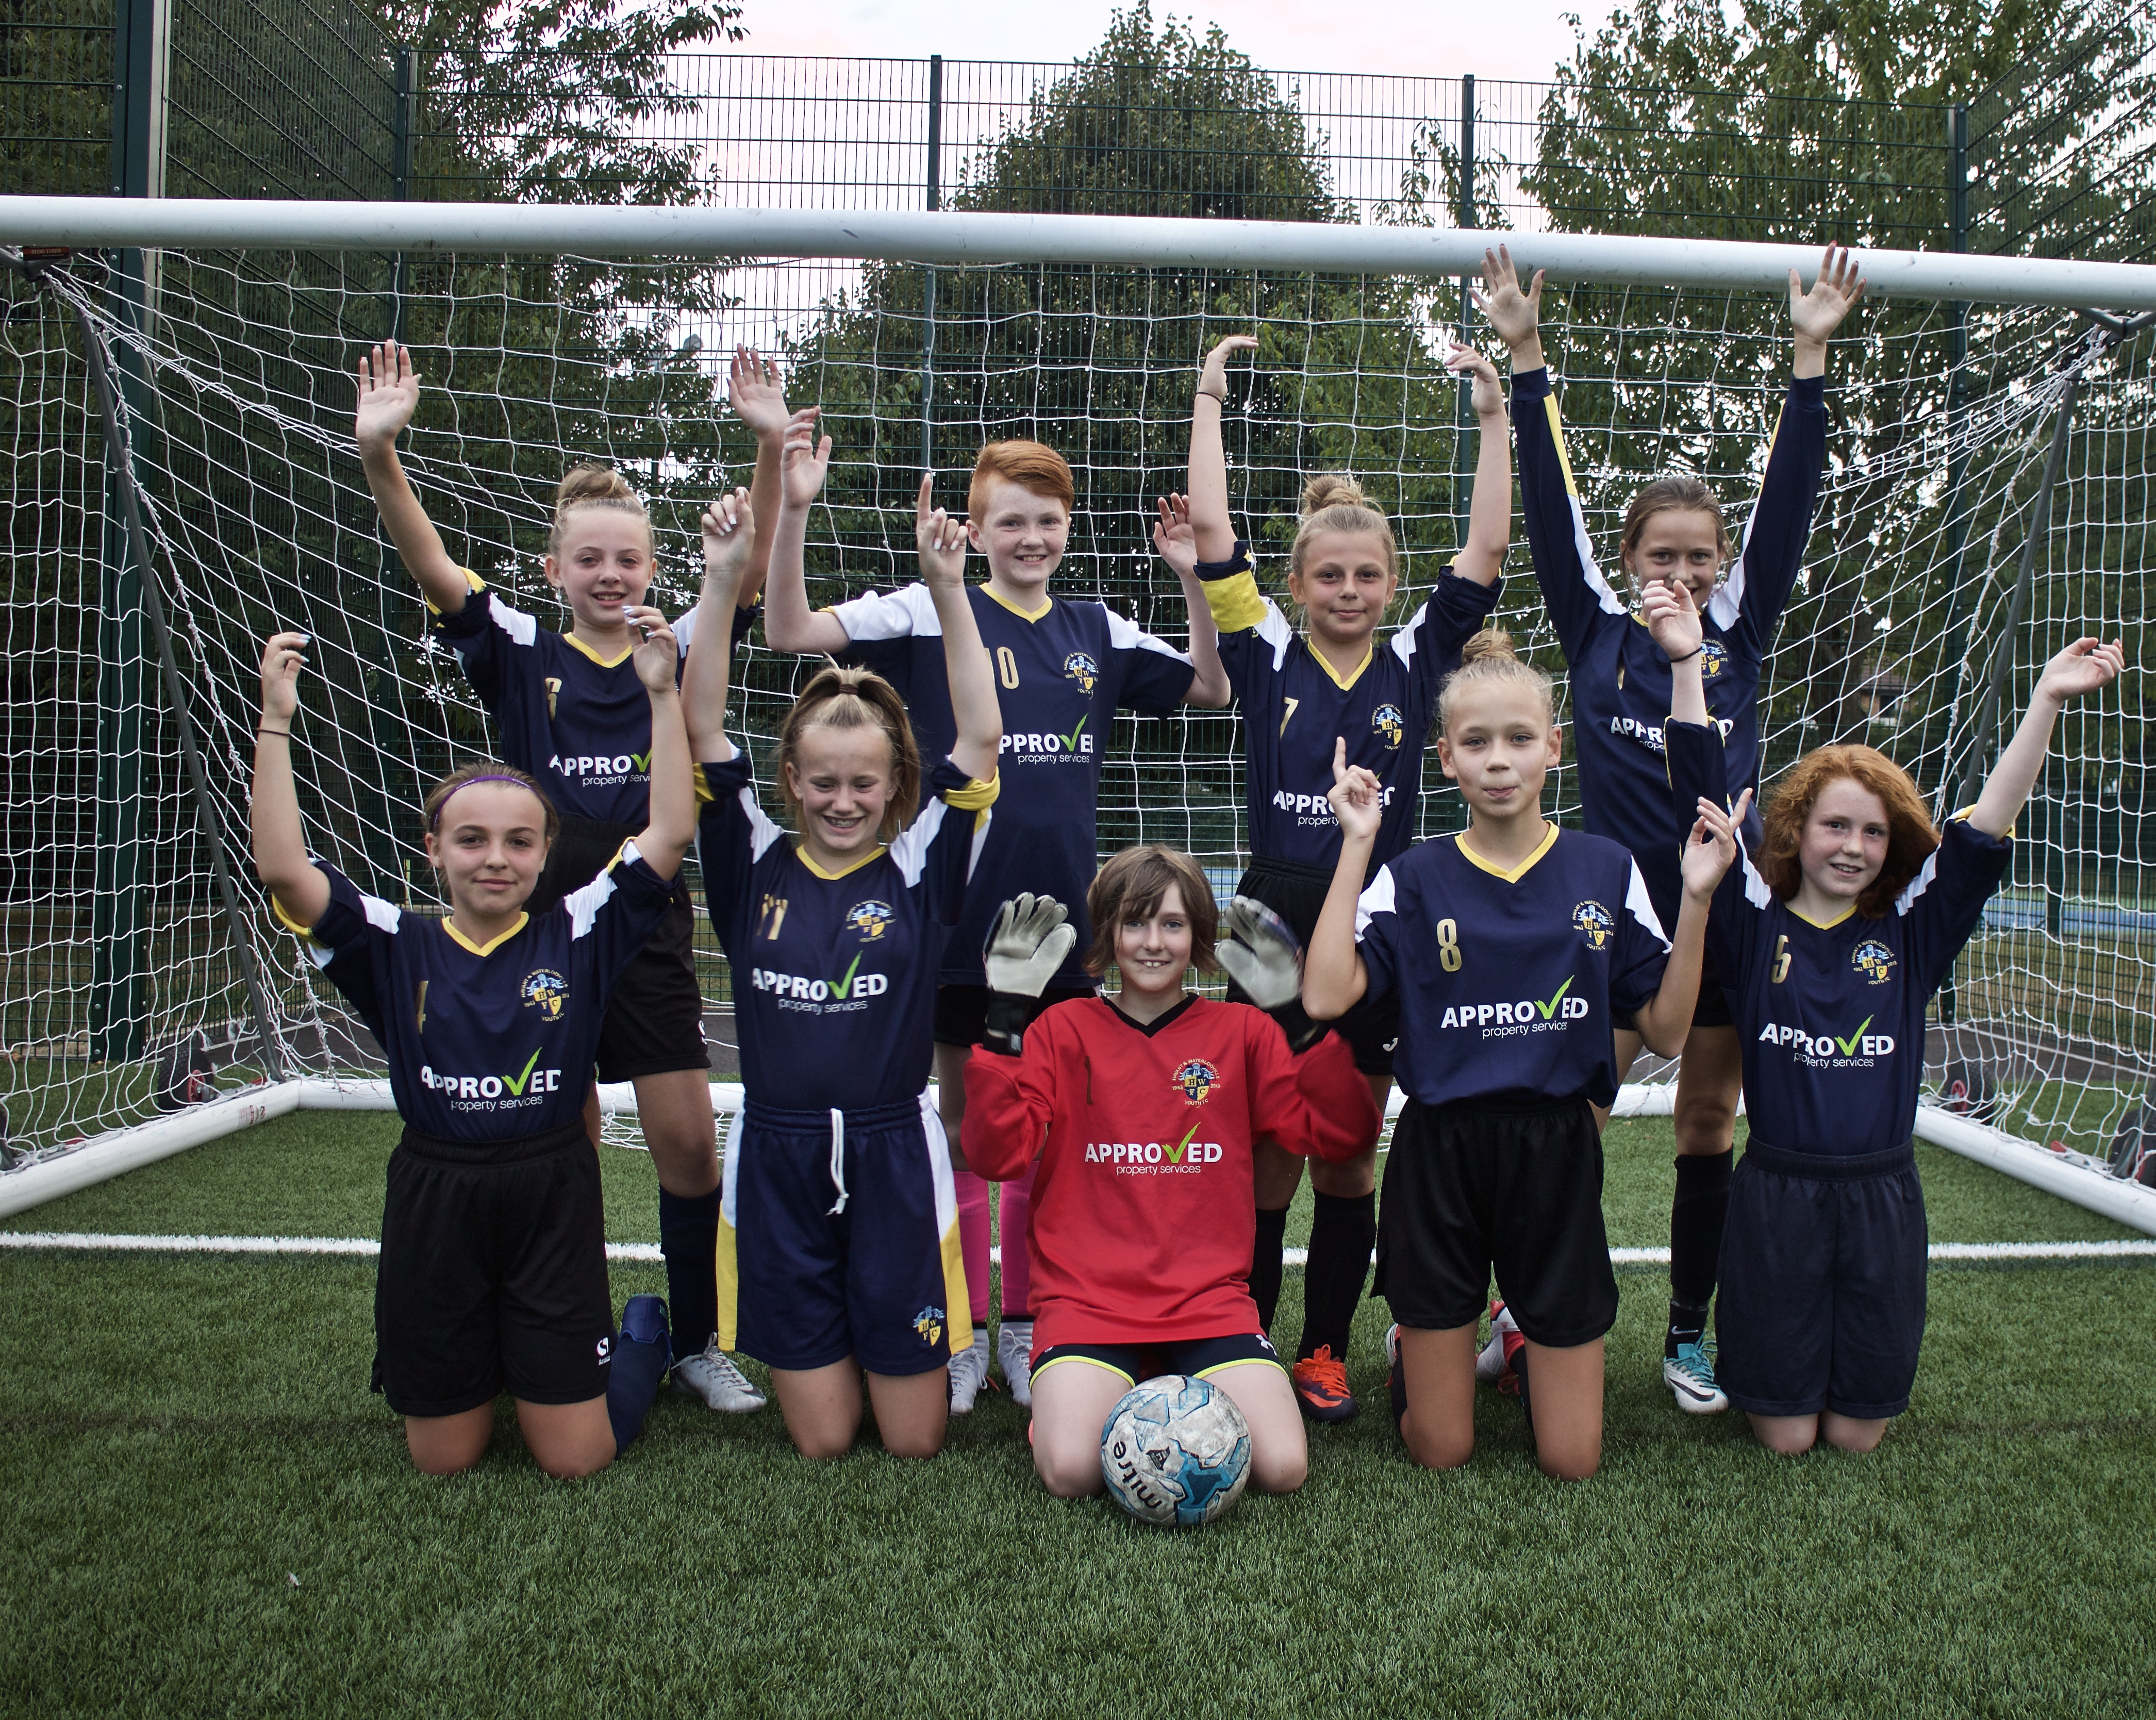 Havant & Waterlooville Girls U13s team photo after their very first friendly against Romsey Town